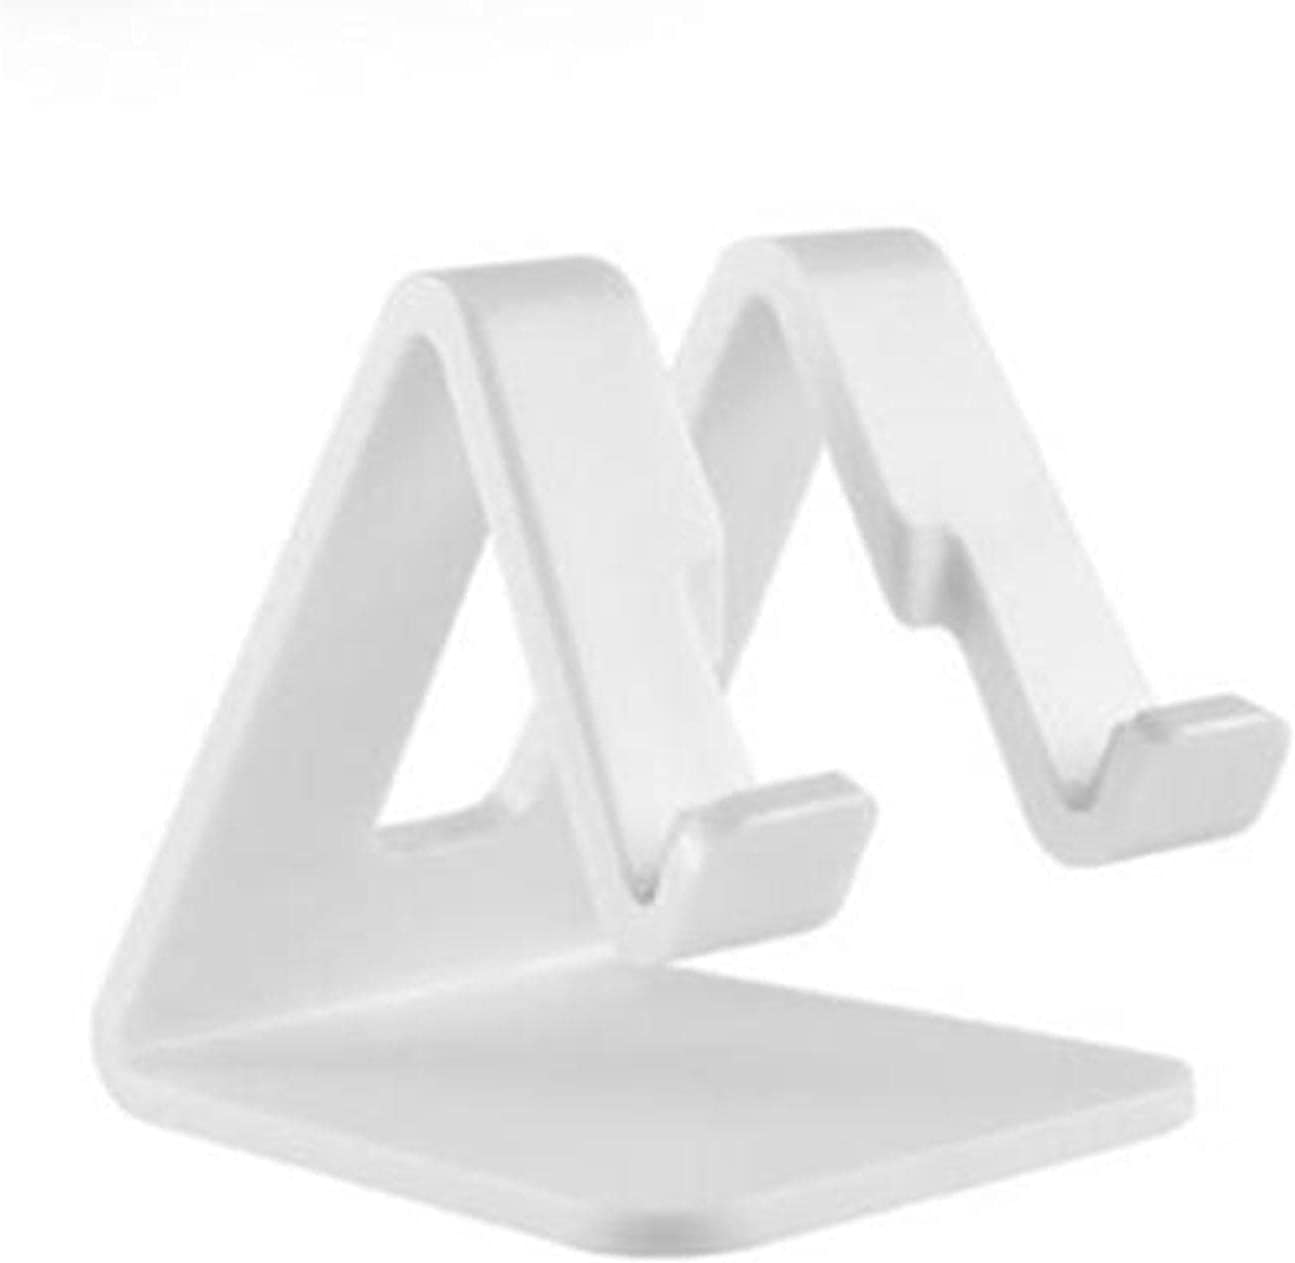 ADJ Phone Popular overseas Holder Desk Stand Cell Bombing new work for Triangle Suppor